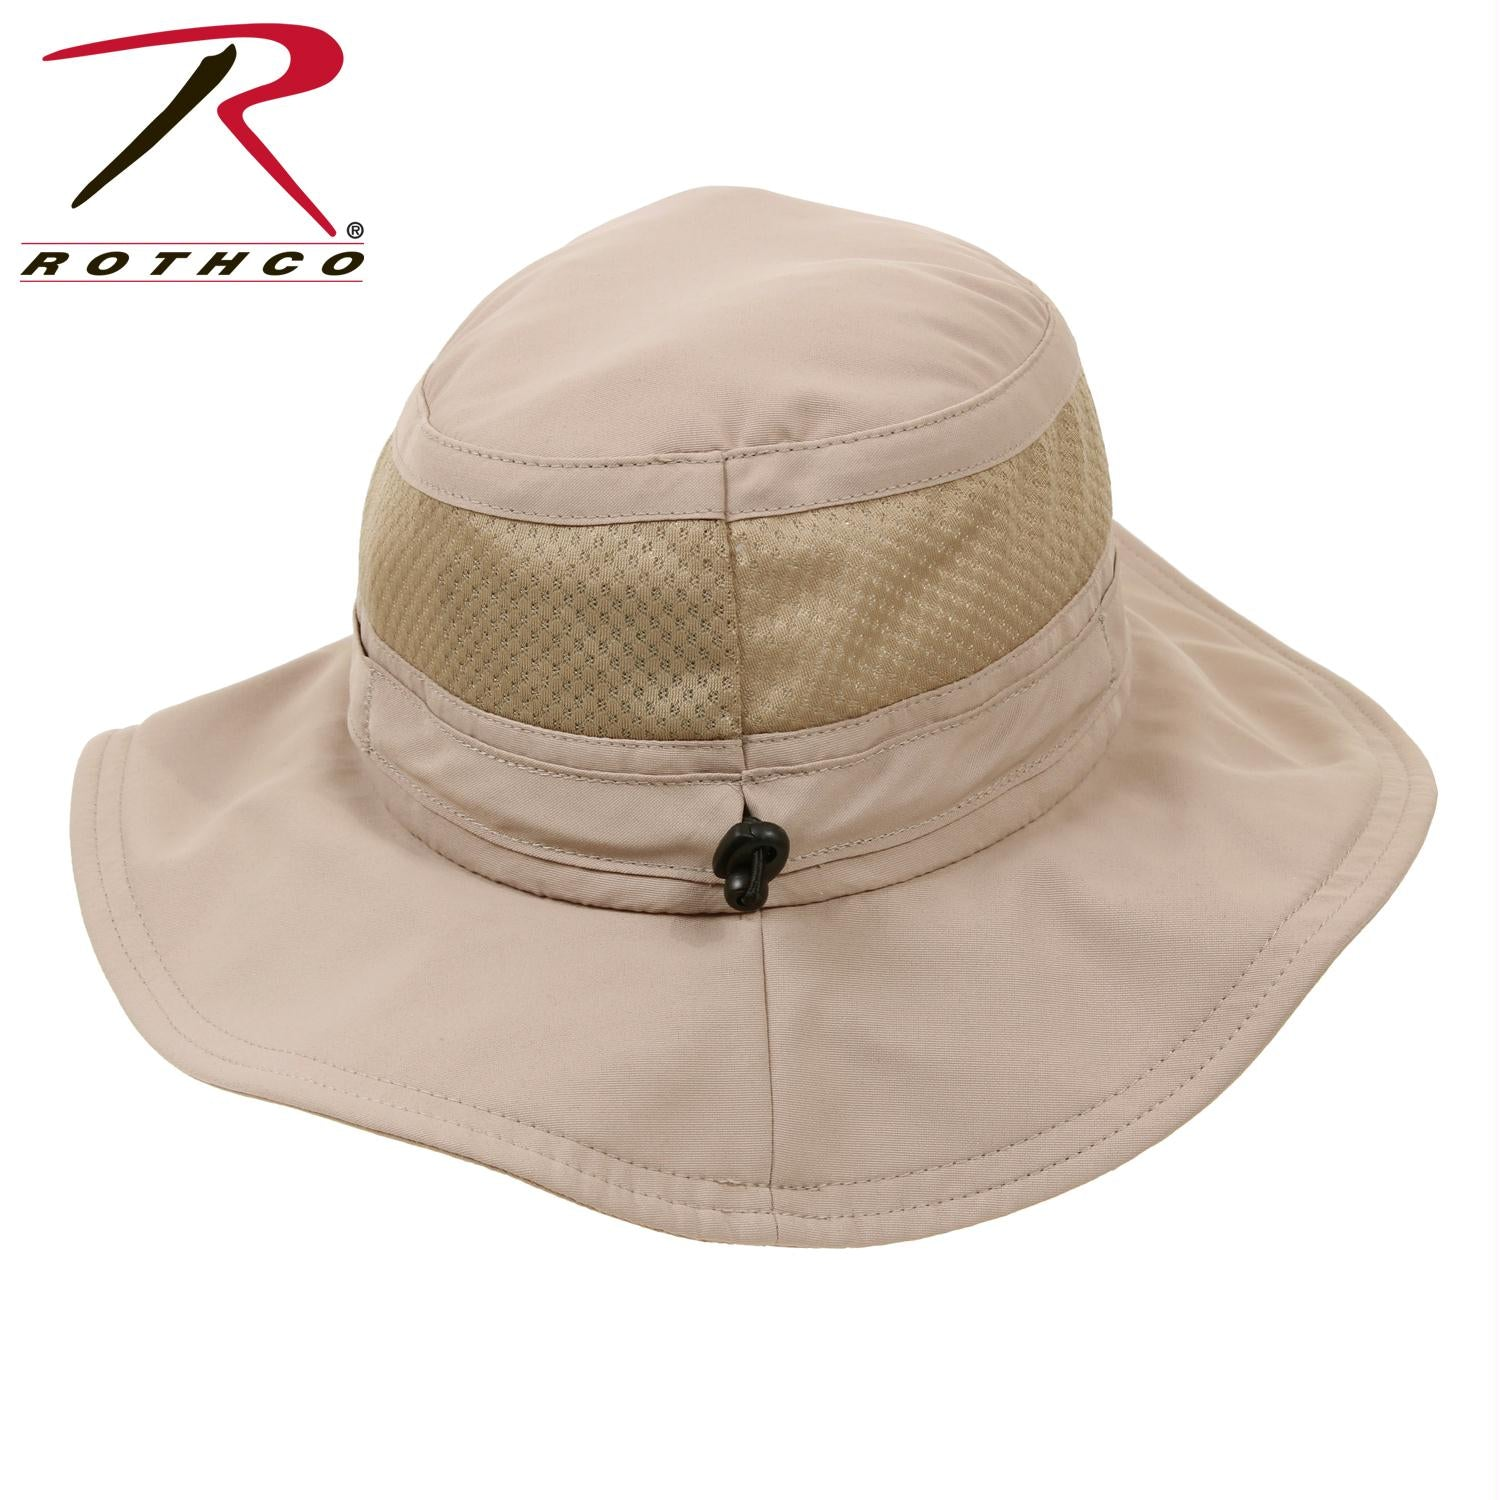 Rothco Lightweight Adjustable Mesh Boonie Hat - One Size